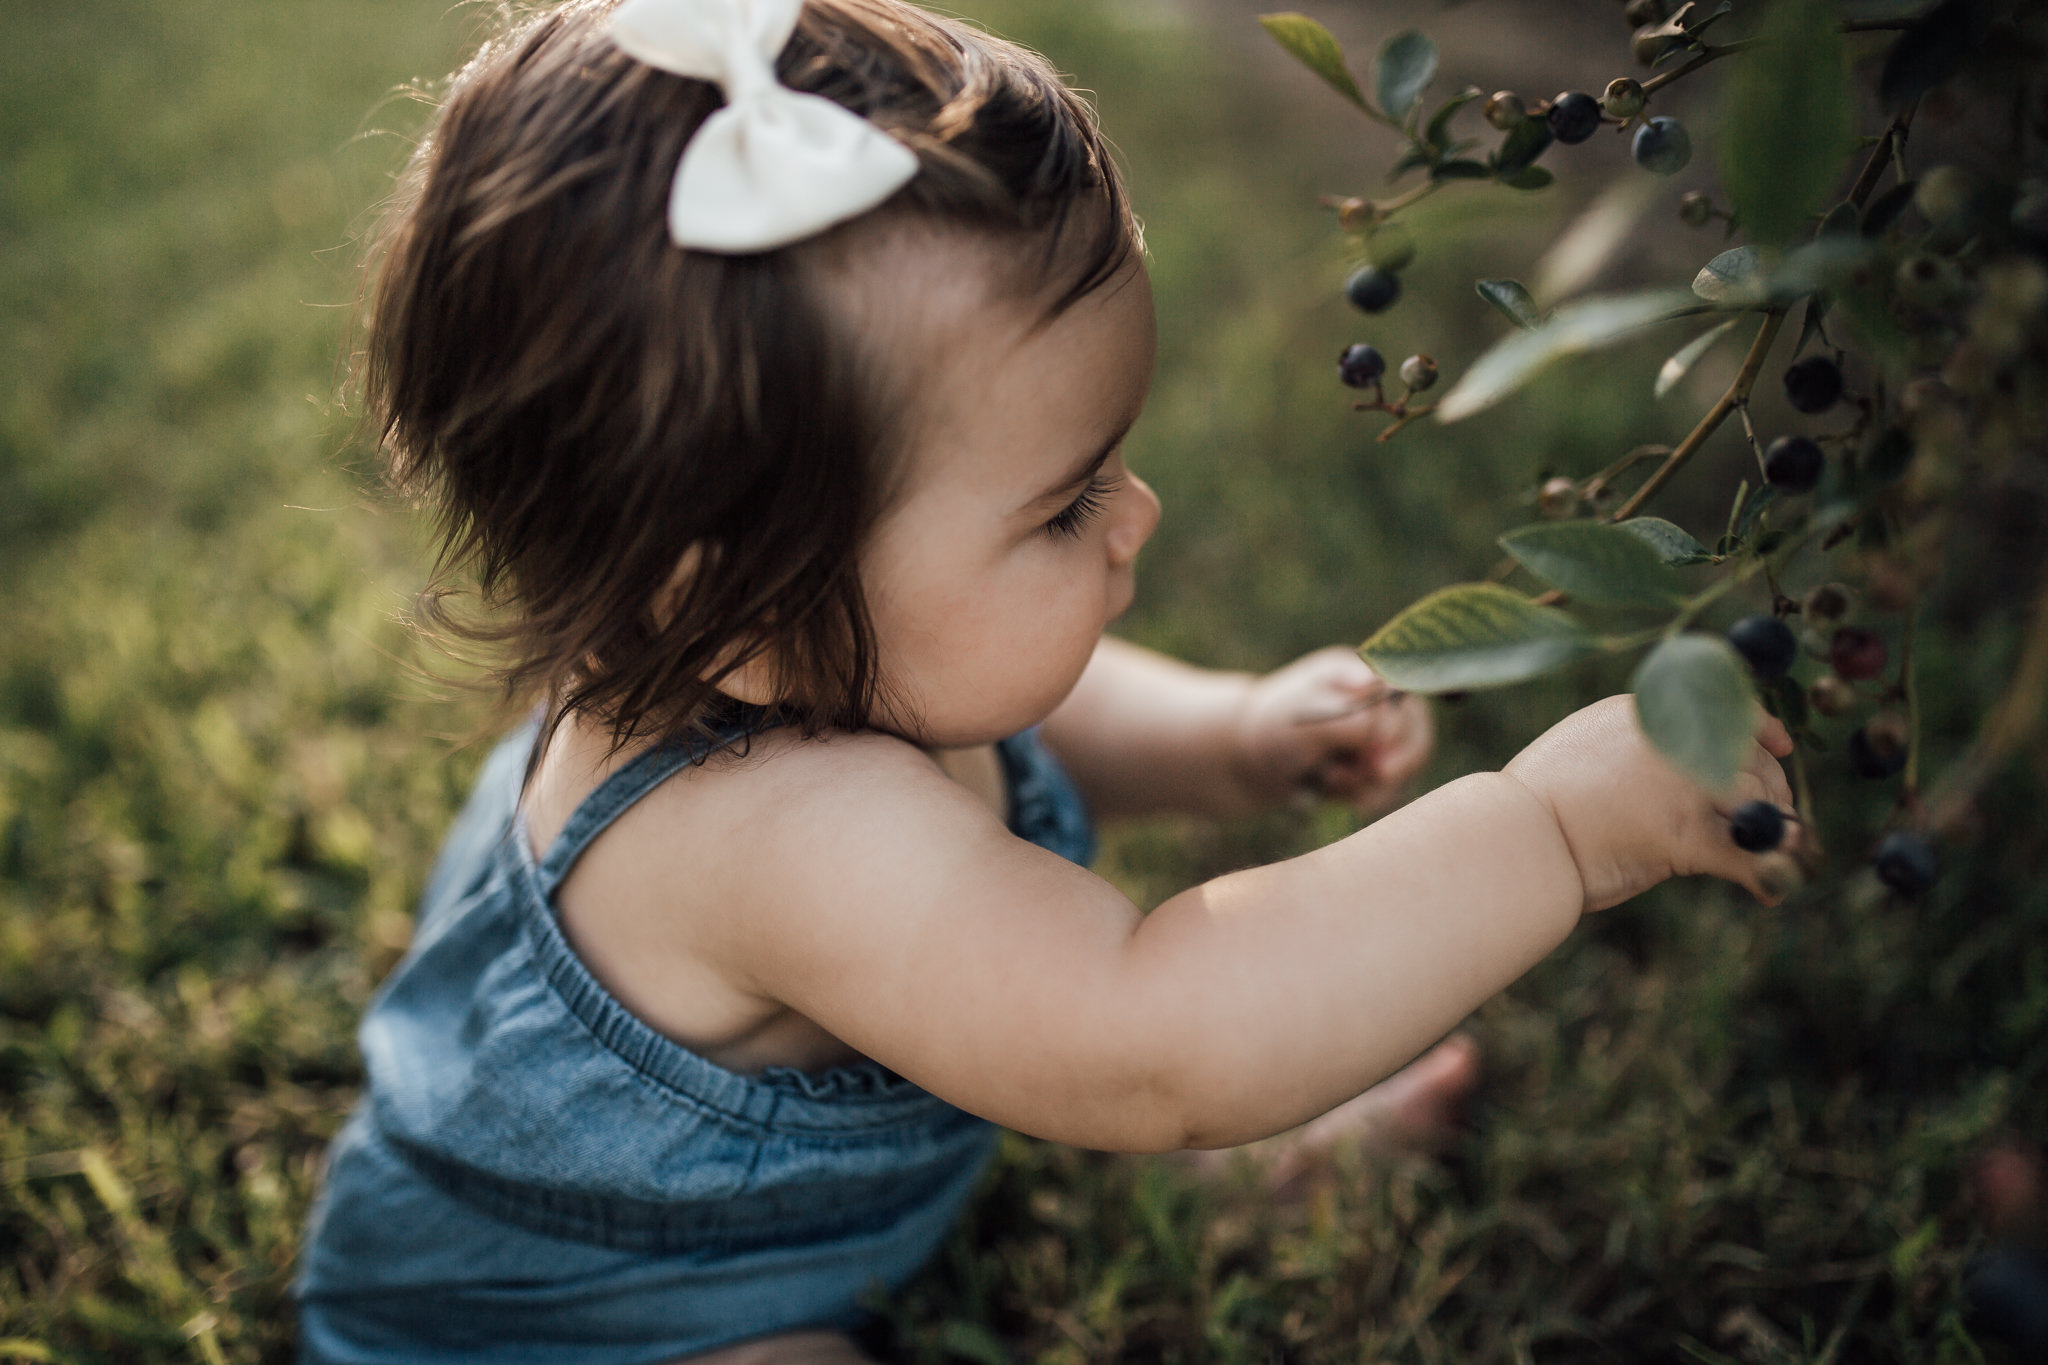 cassie-cook-photography-family-lifestyle-nesbit-blueberries